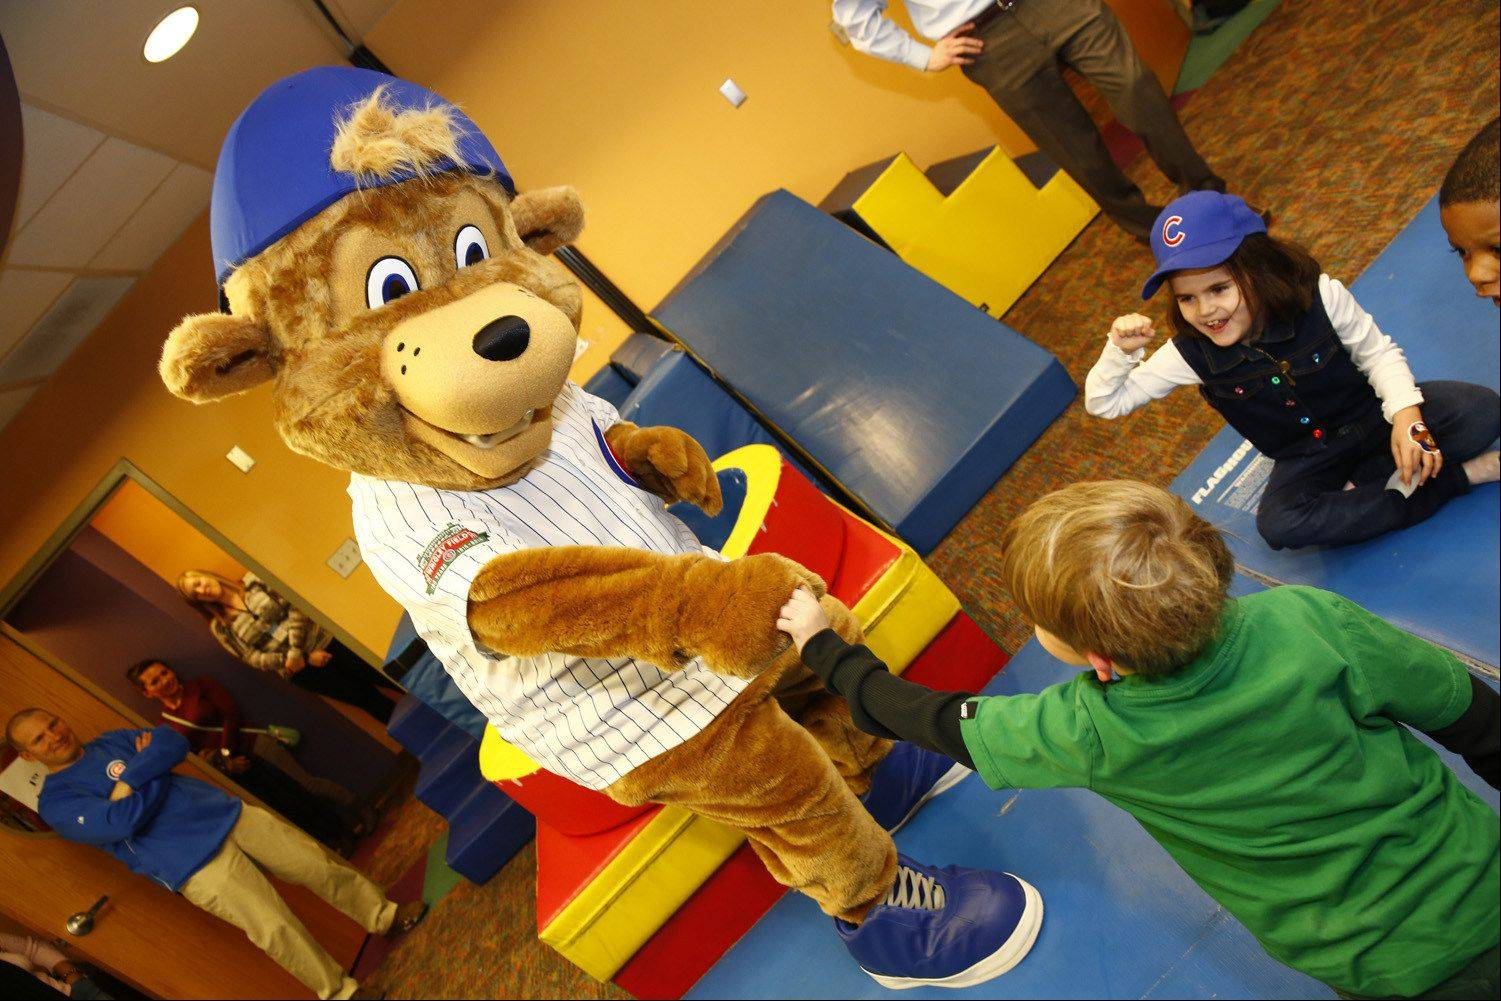 COURTESY OF THE CHICAGO CUBSAdults might make fun of Clark the Cub, but the new Chicago Cubs mascot scores a hit with children during this week's visit to the Advocate Illinois Masonic Medical Center's Pediatric Developmental Center.